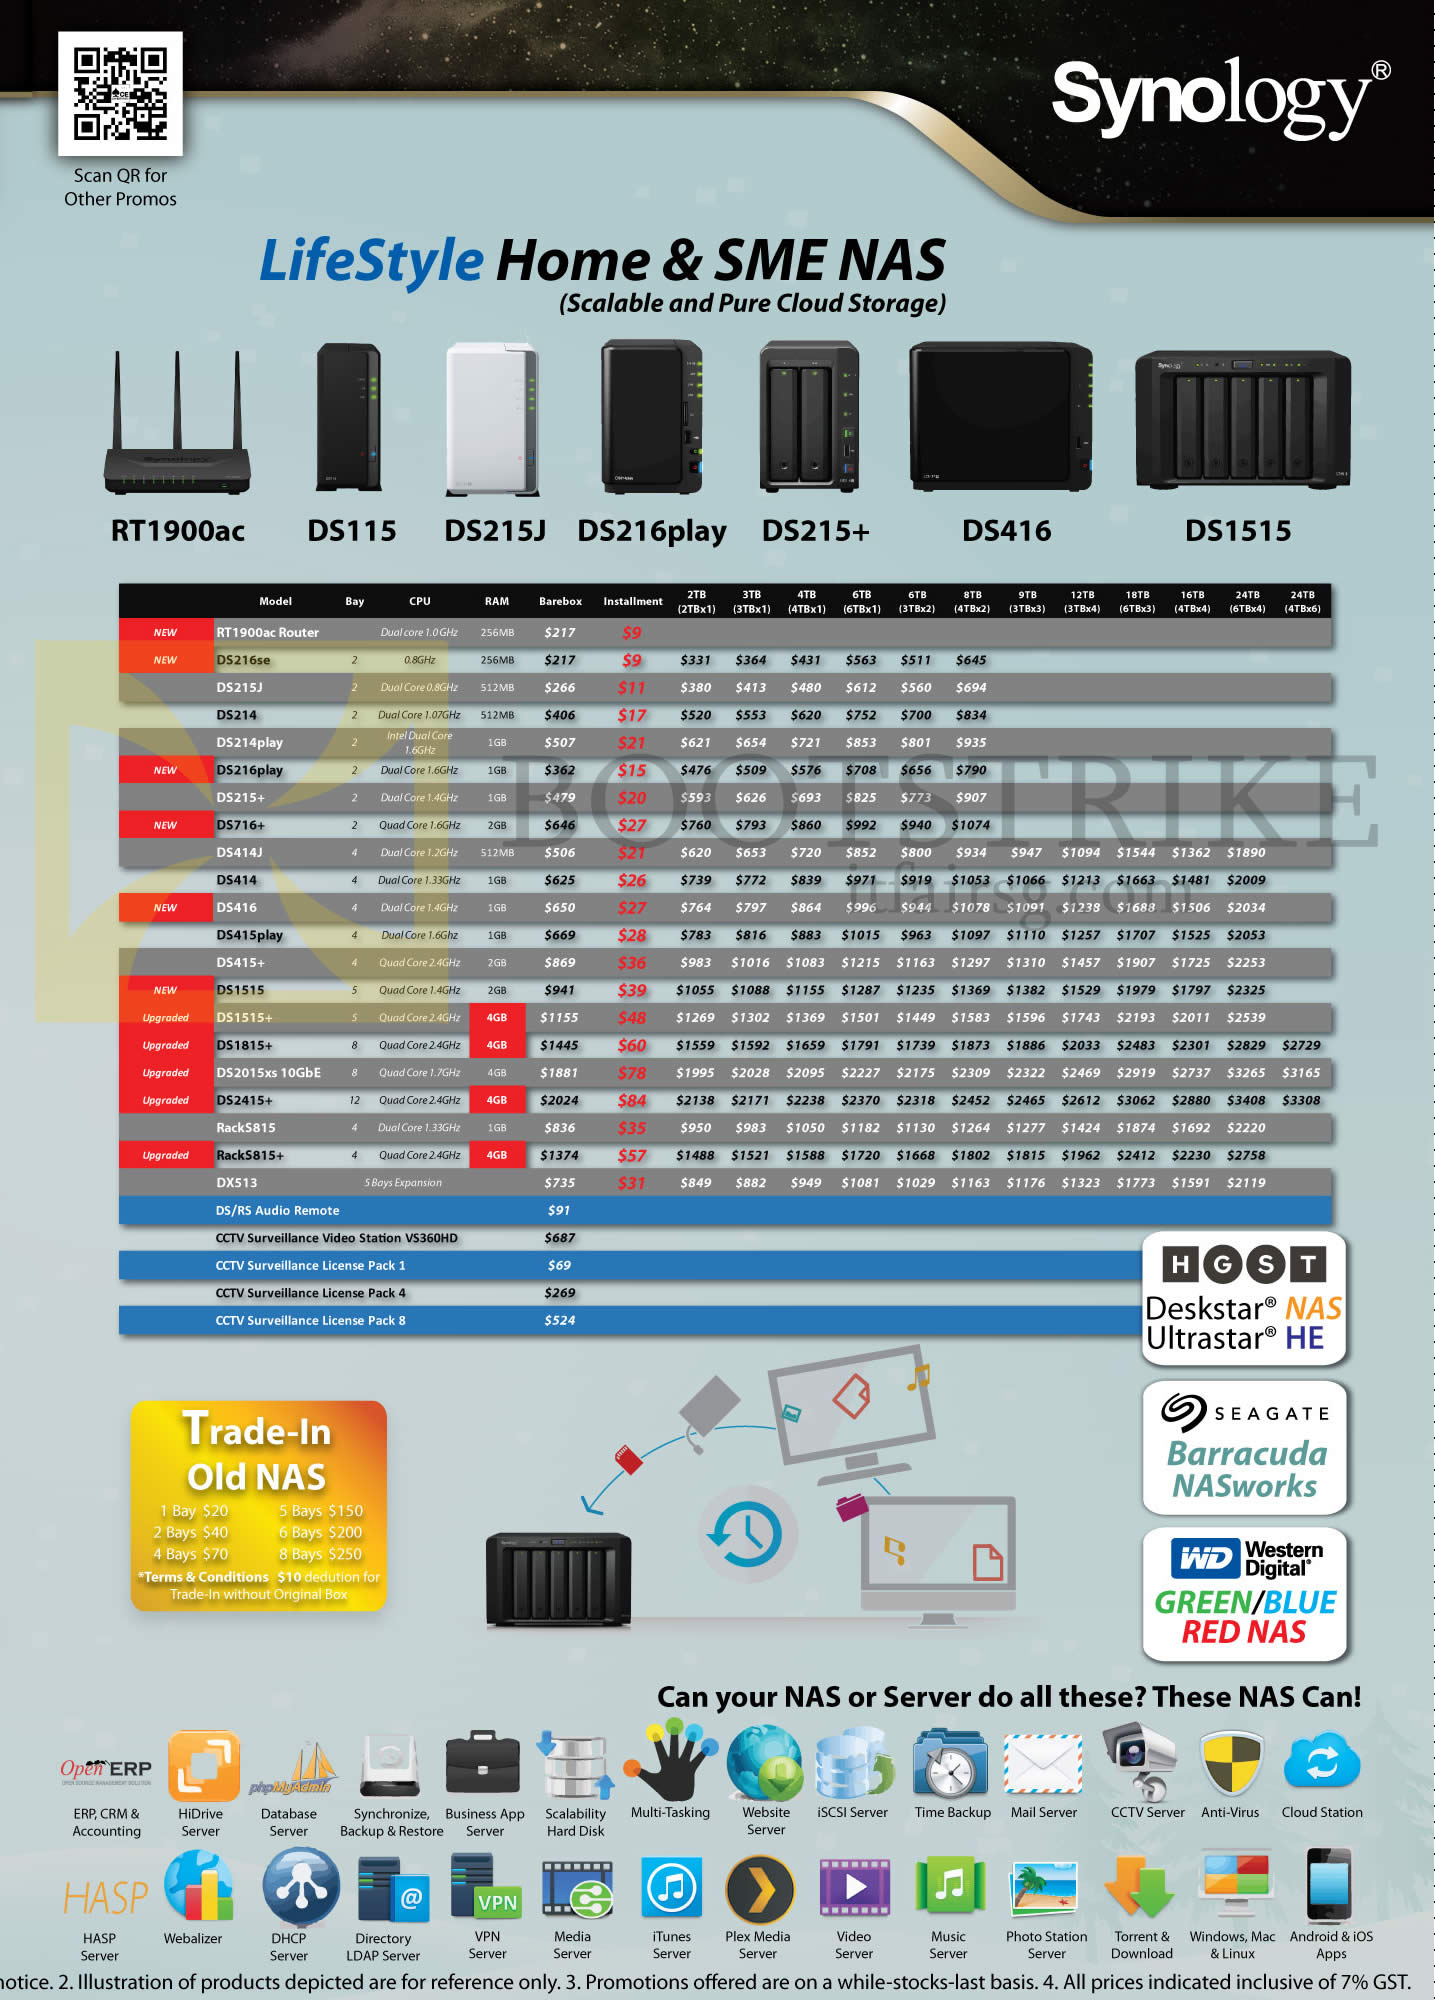 SITEX 2015 price list image brochure of Ace Peripherals Synology NAS, DiskStation